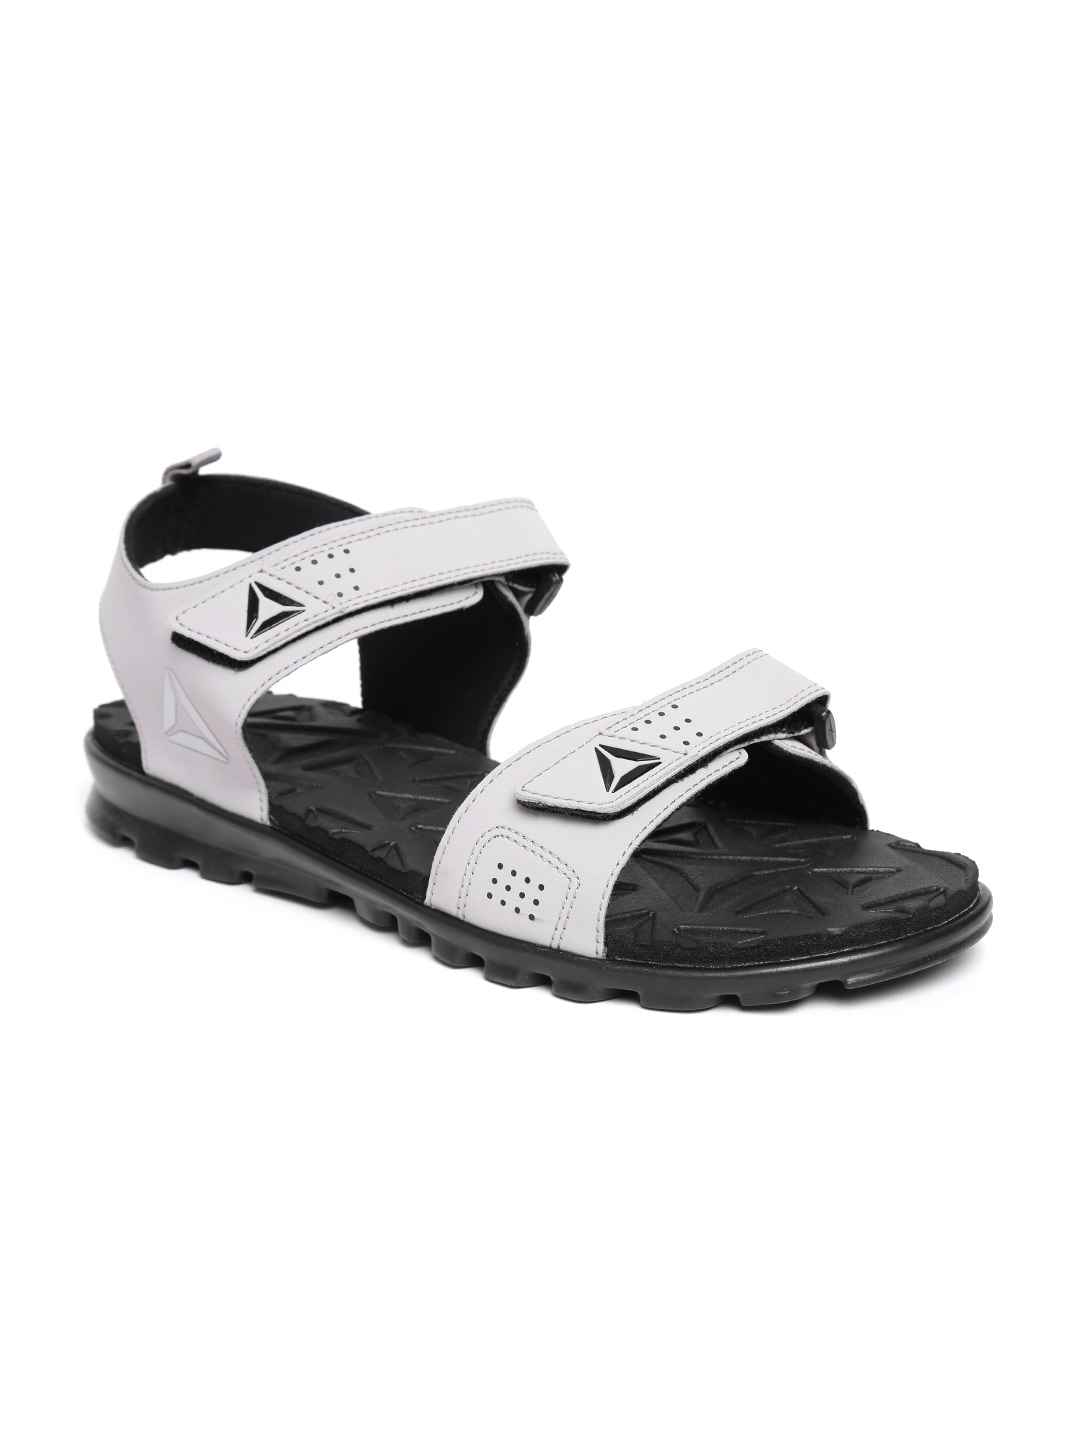 c629b944035b Reebok Bags Sports Sandals - Buy Reebok Bags Sports Sandals online in India